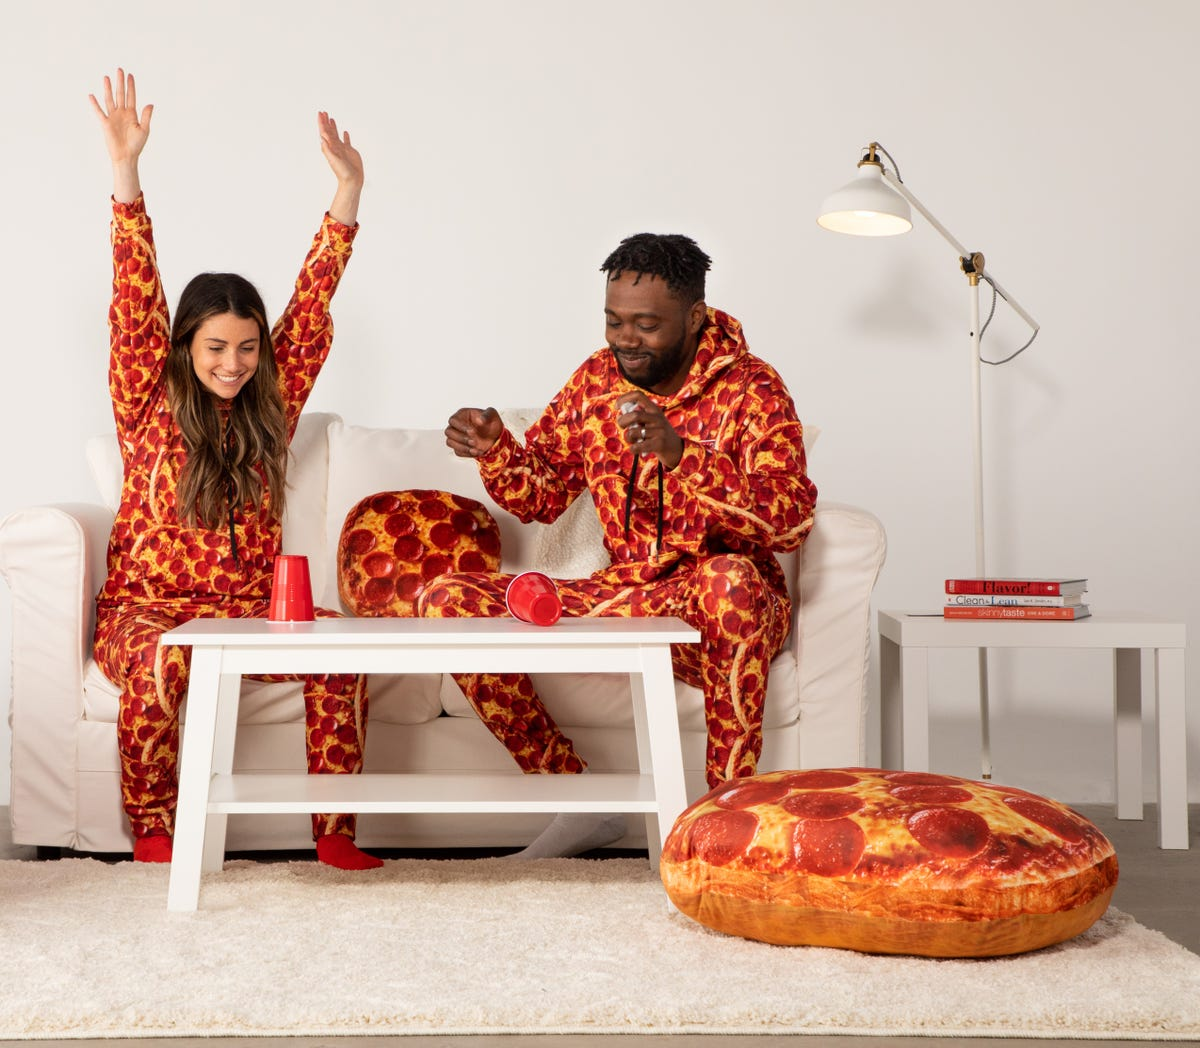 A man and woman sitting on a couch in pizza-covered jumpsuits.